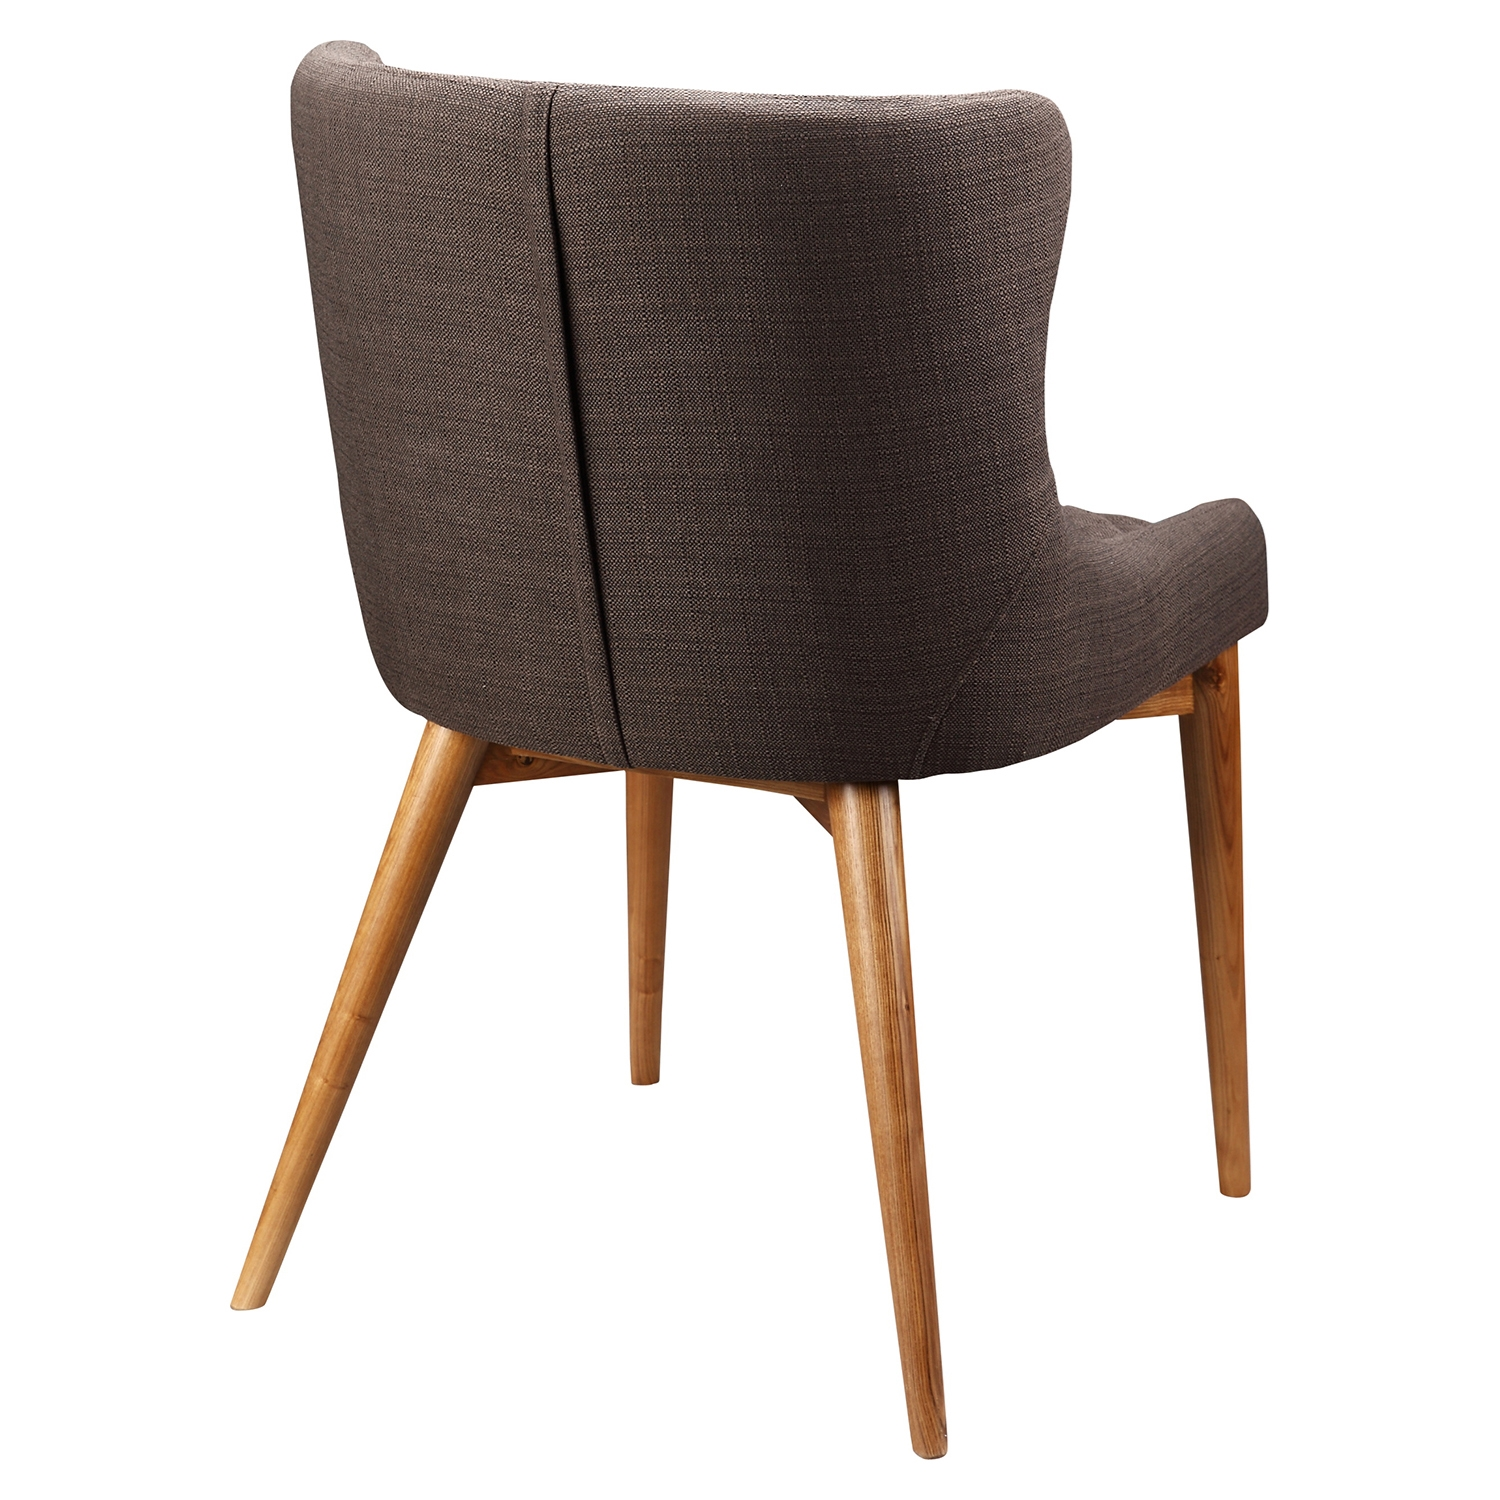 Dax Dining Chair - Brown - MOES-EH-1099-49